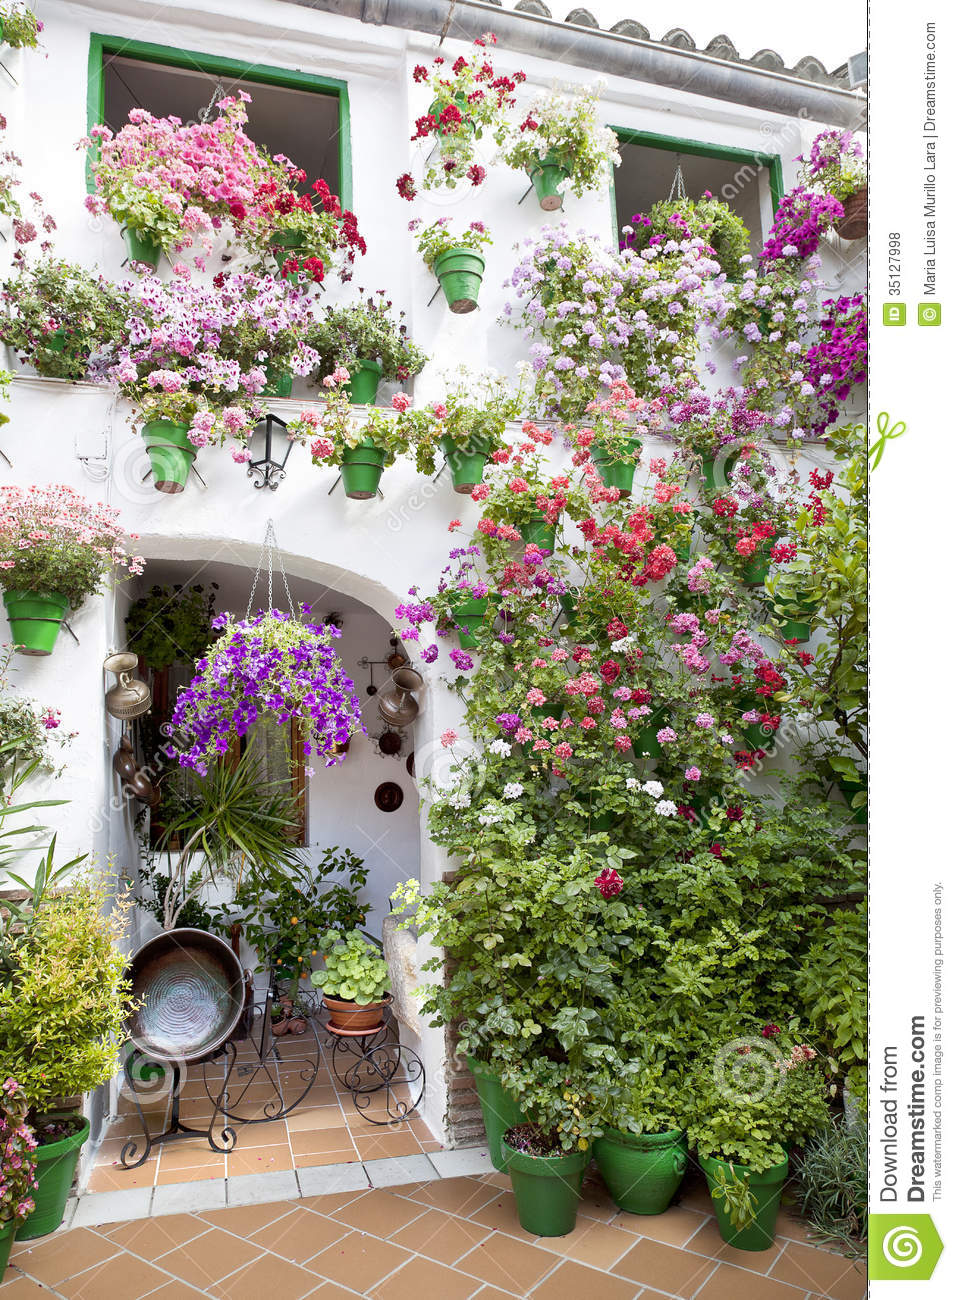 flowers pots standing in a andalusian patio royalty free stock photos image 35127998. Black Bedroom Furniture Sets. Home Design Ideas